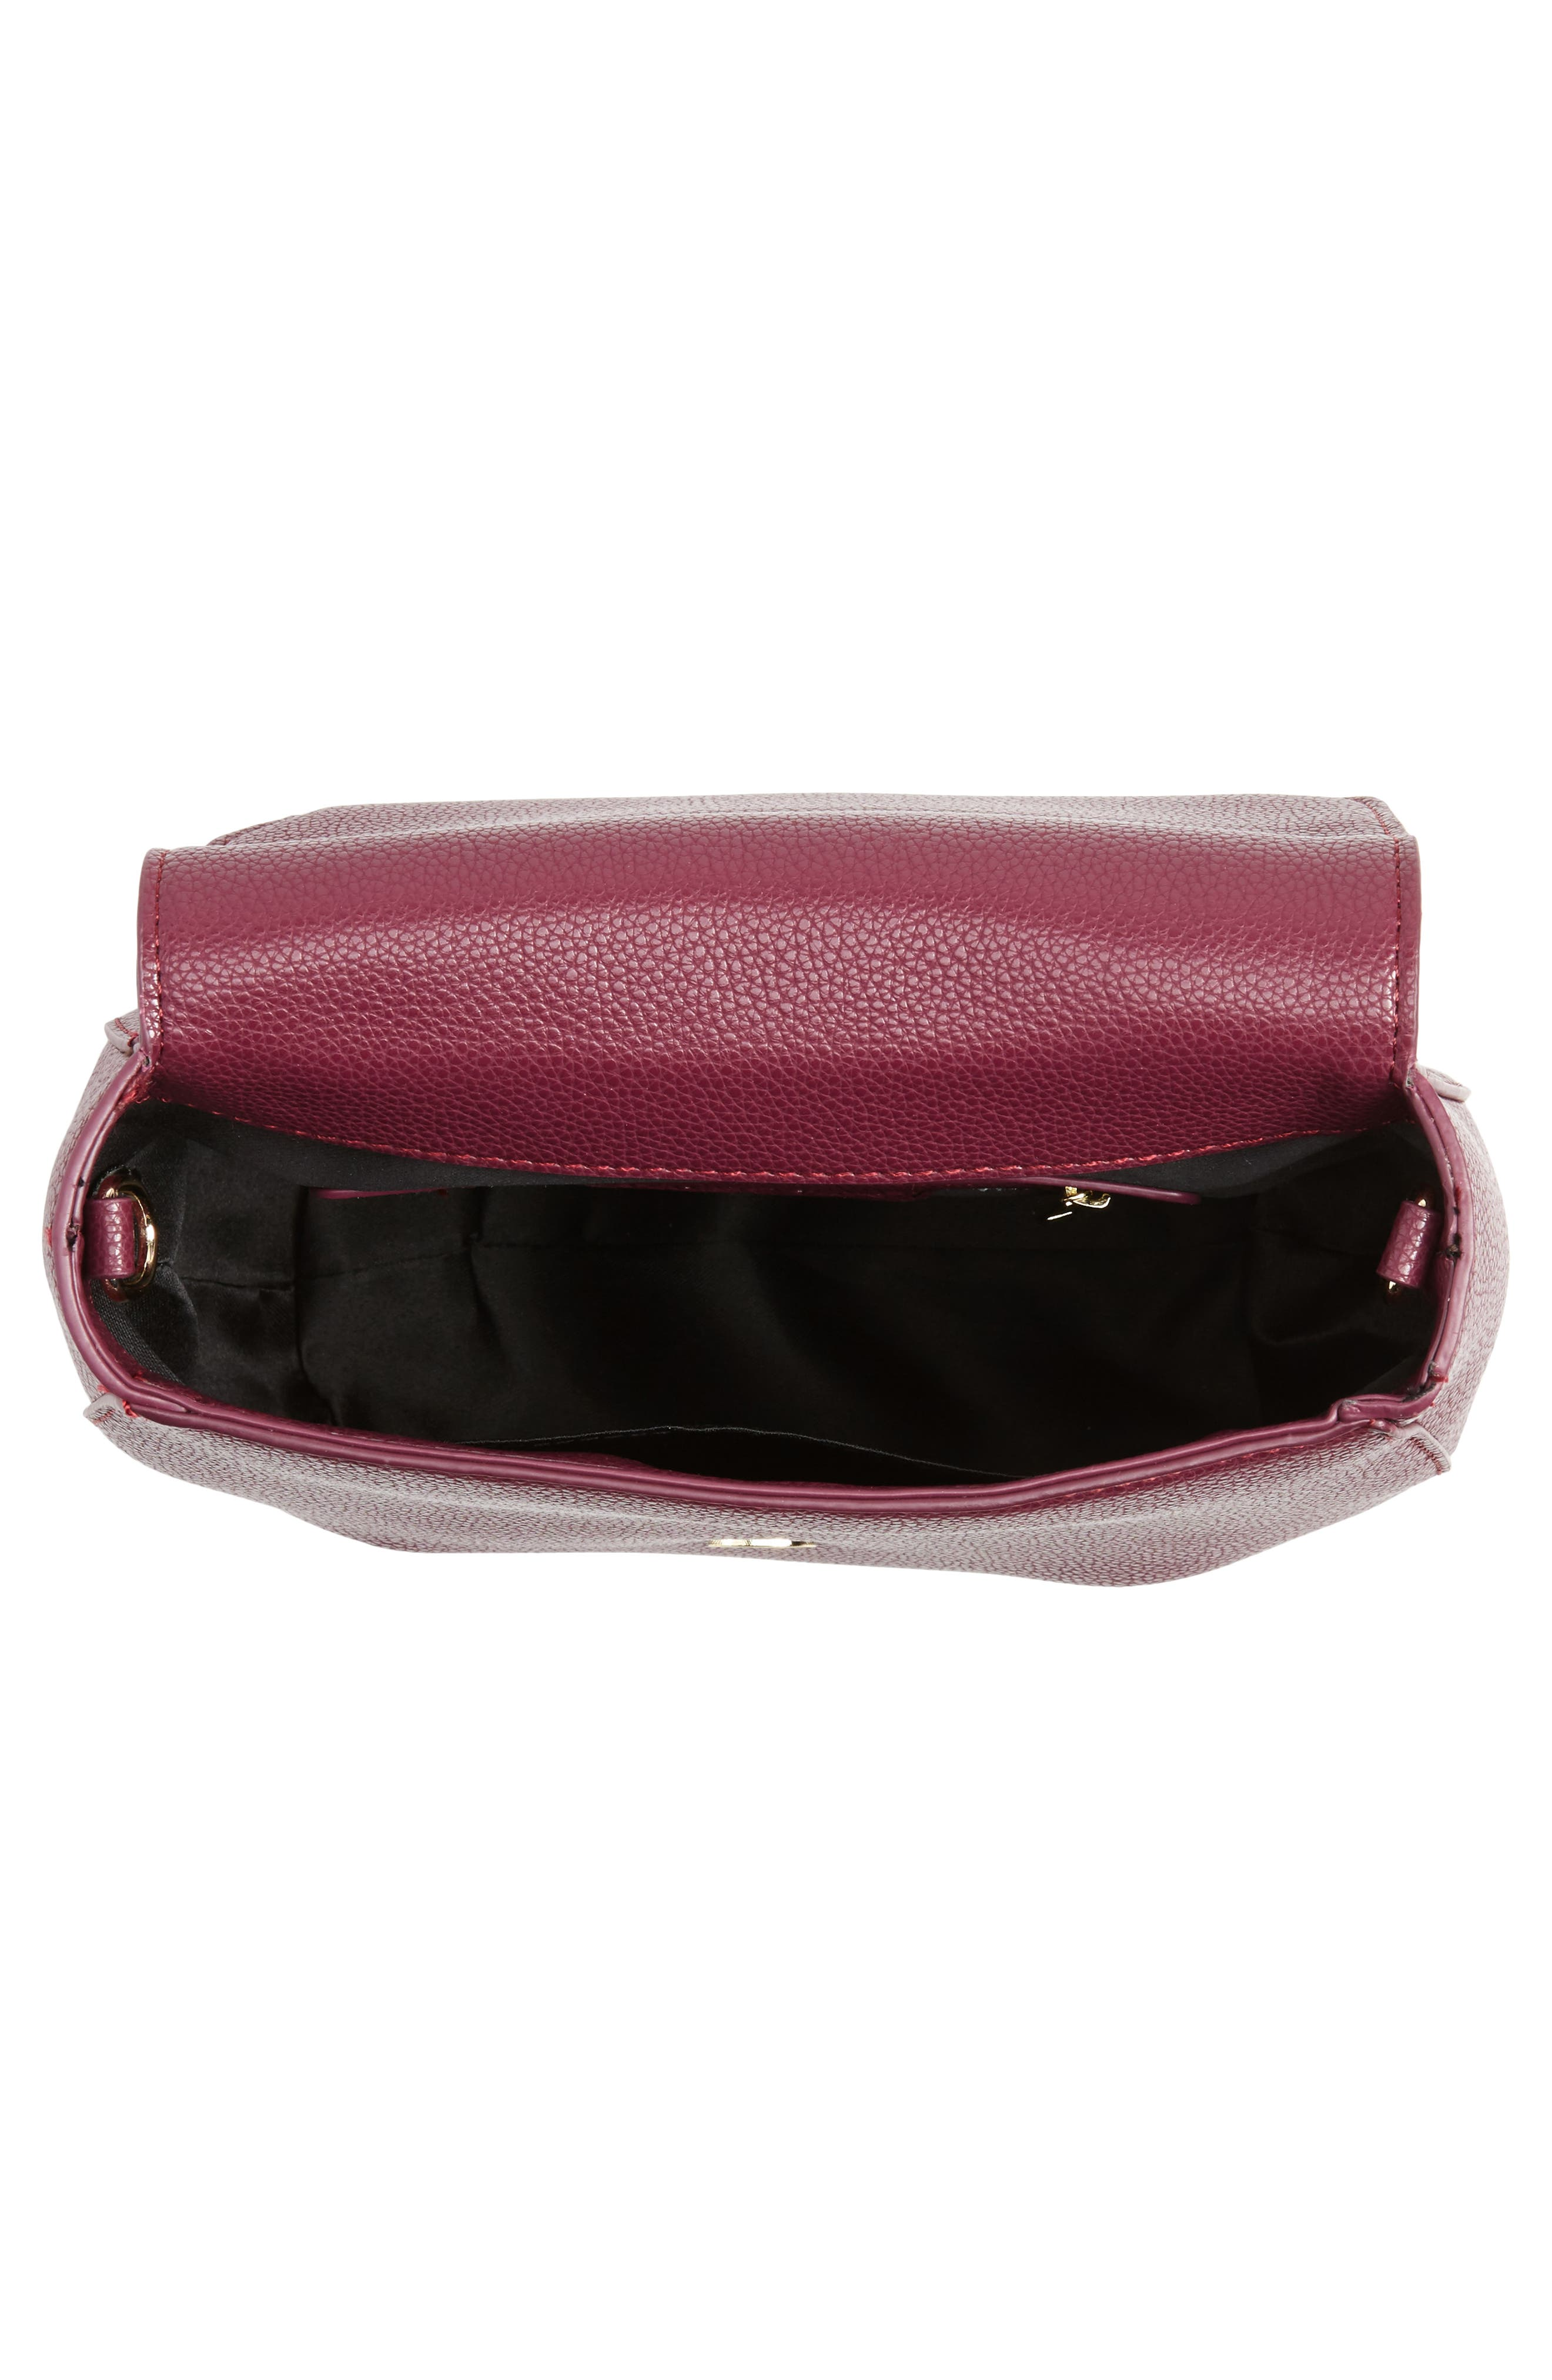 Isa Faux Leather Crossbody Bag,                             Alternate thumbnail 4, color,                             Berry Sweet/ Boysenberry